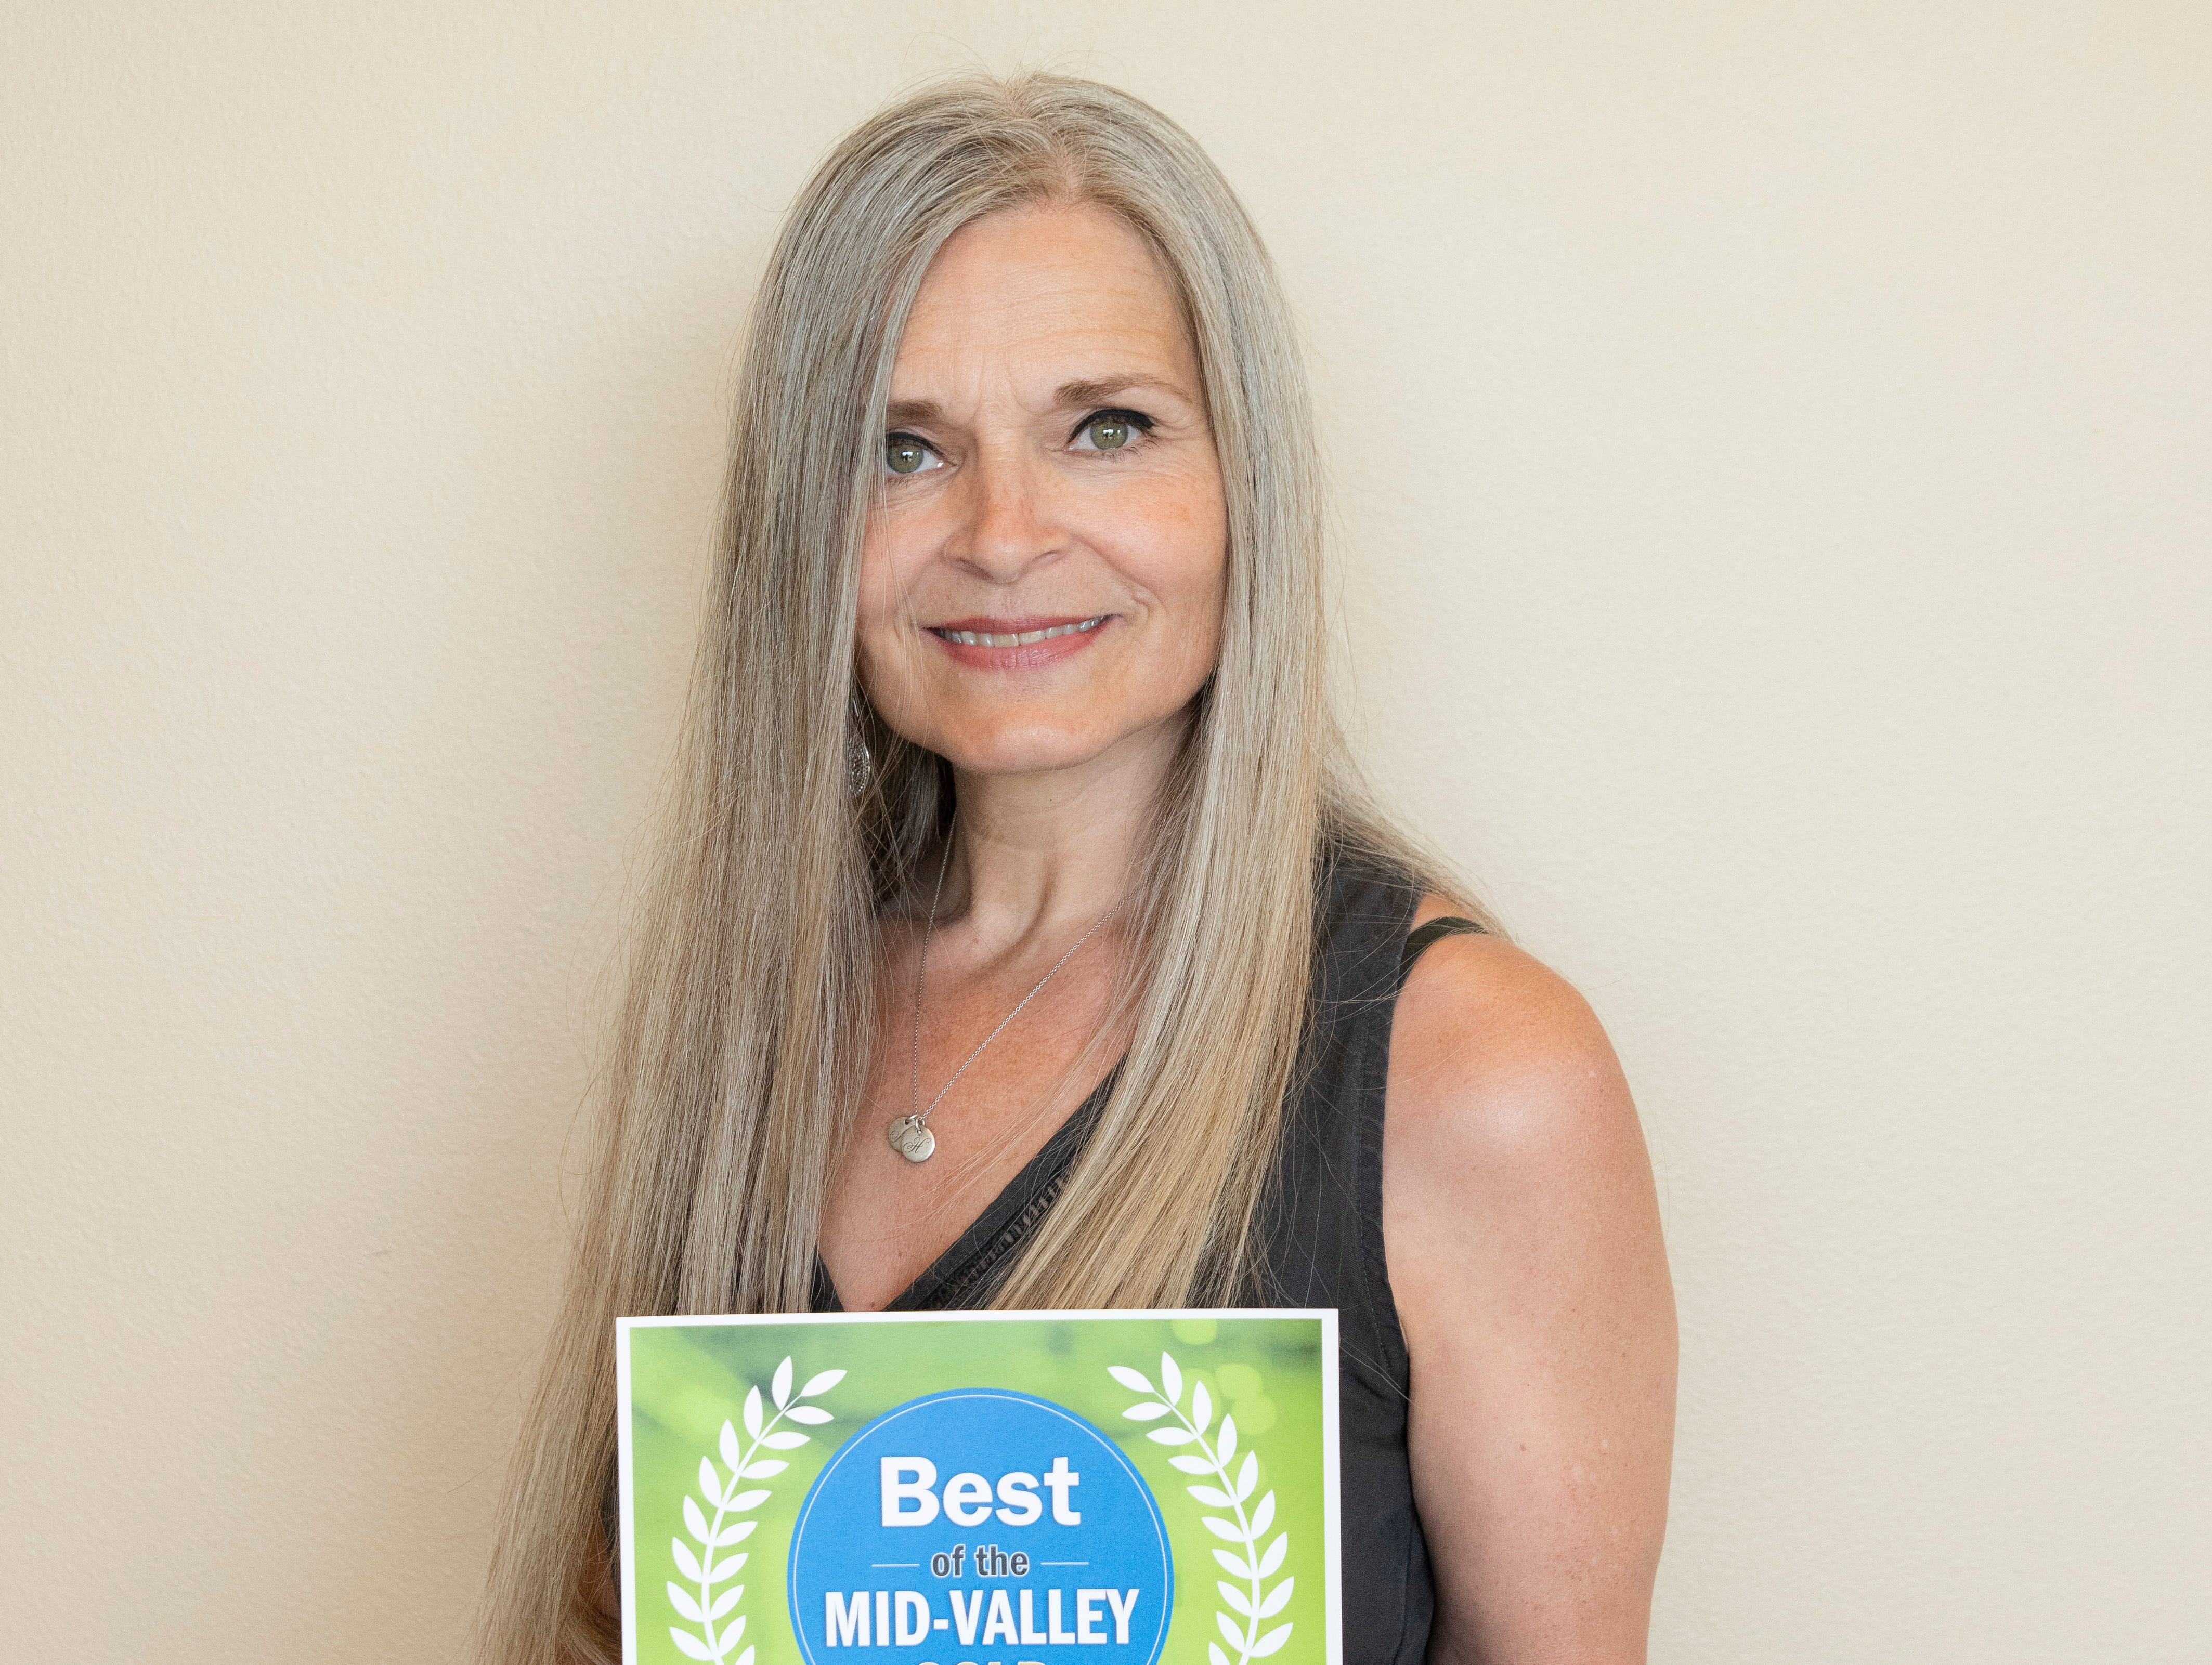 Nydrie Edwards won gold for Best Residential Real Estate Agent in the 2019 Best of the Mid-Valley.